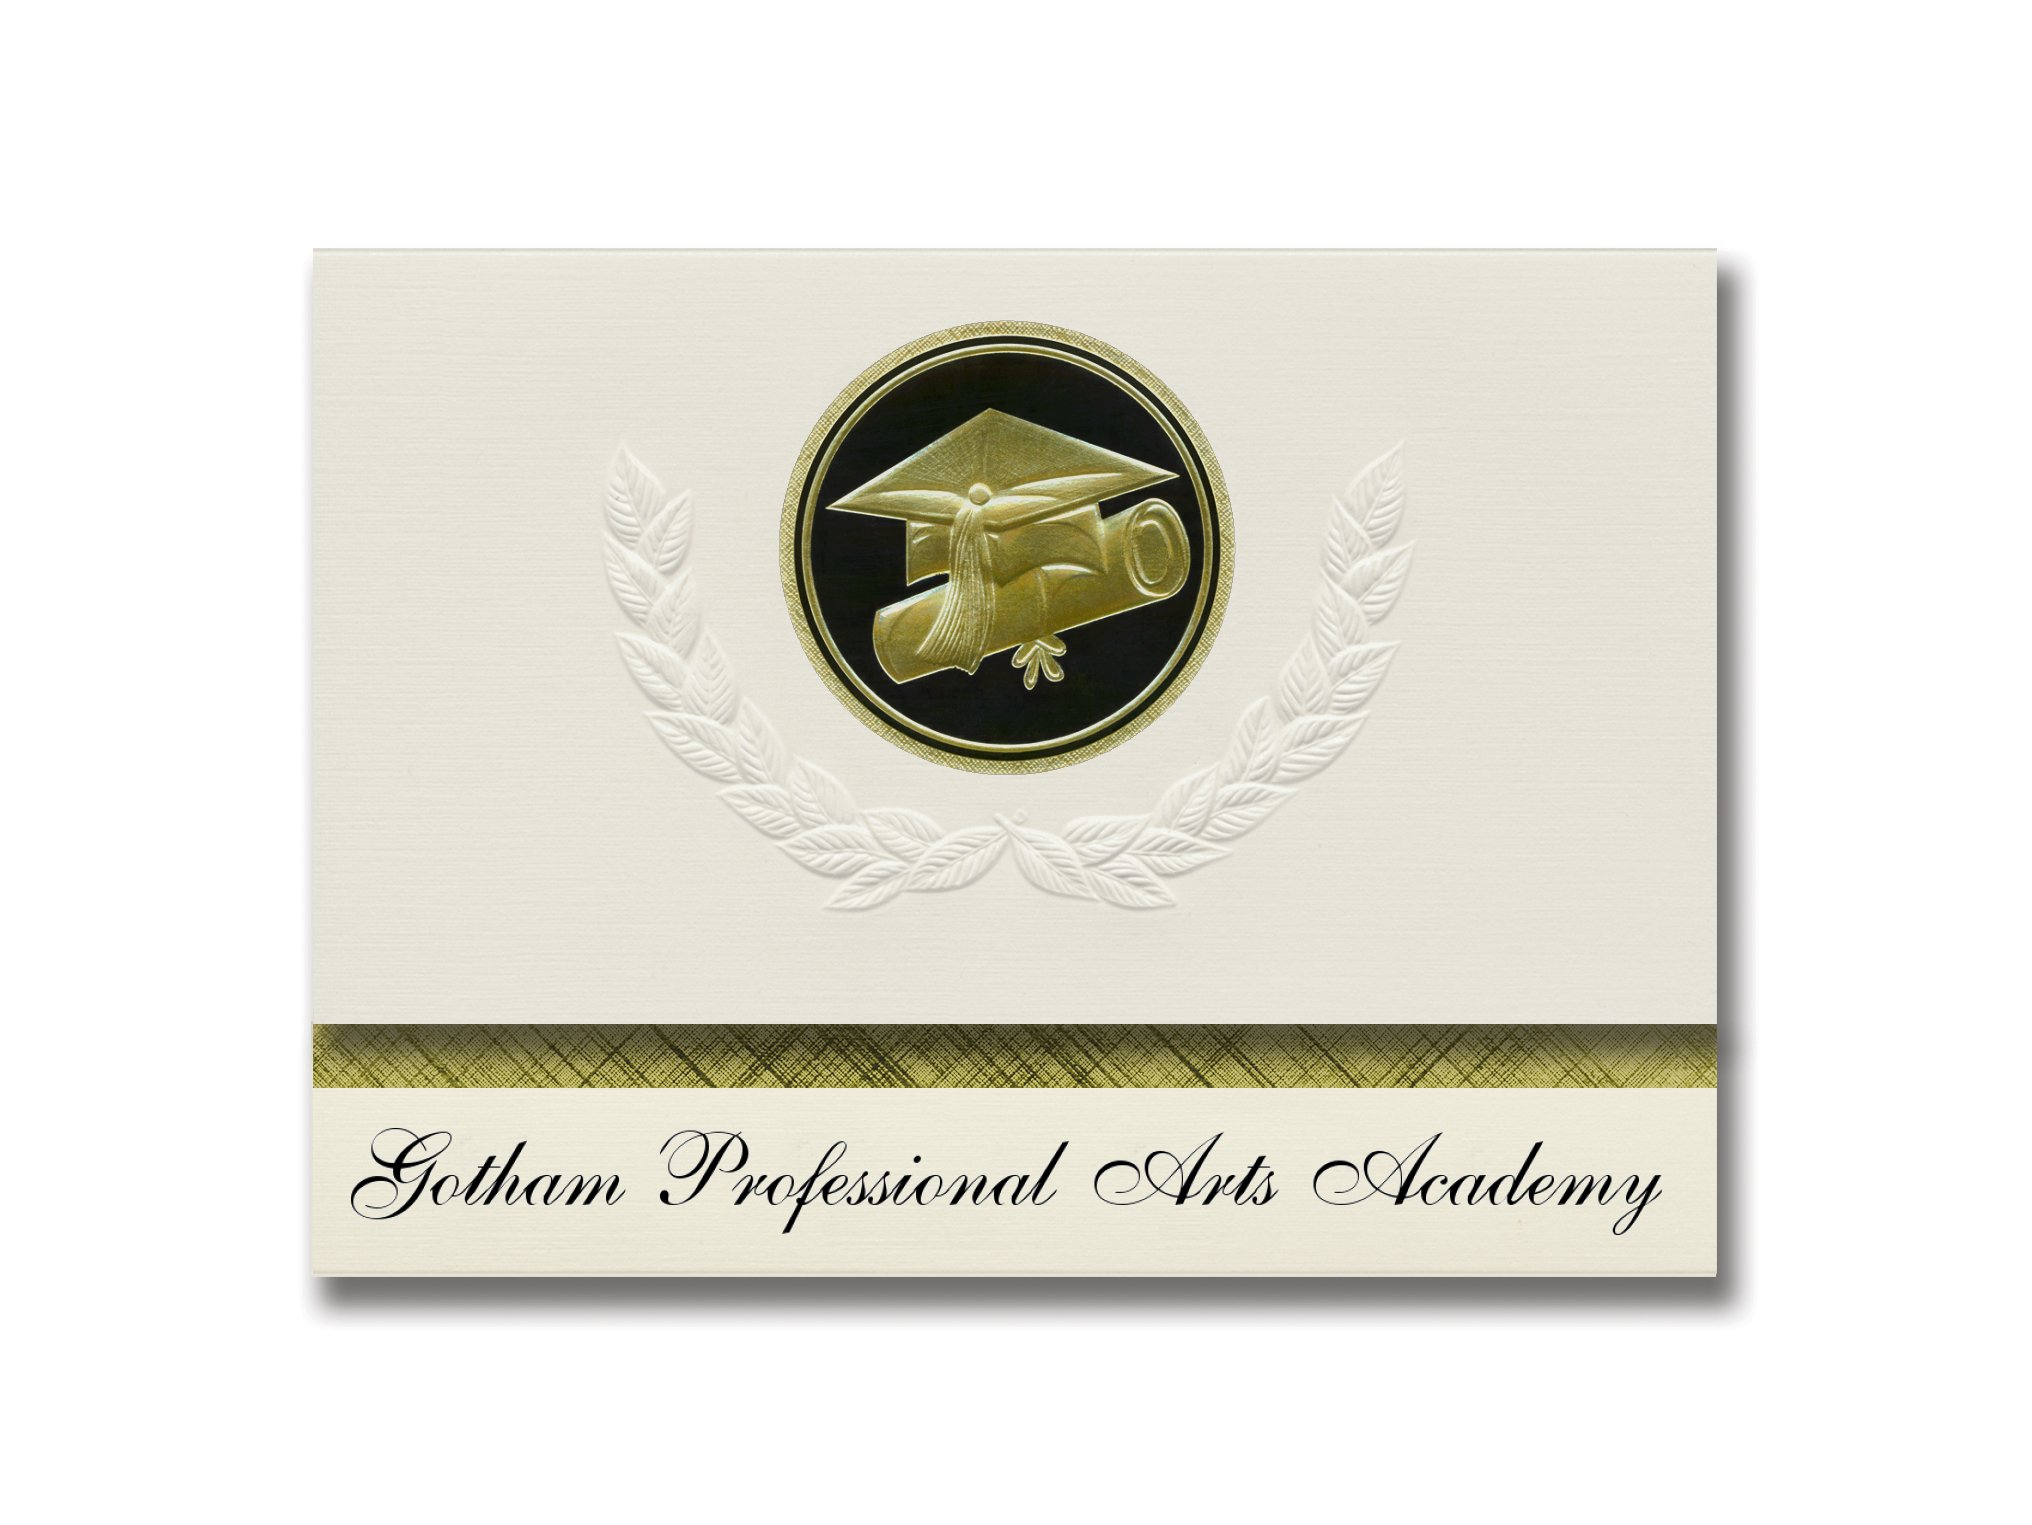 Signature Announcements Gotham Elite Arts Academy (Brooklyn, NY) Graduation Announcements, Presidential style, Elite package of 25 Cap & Diploma Seal Black & Gold